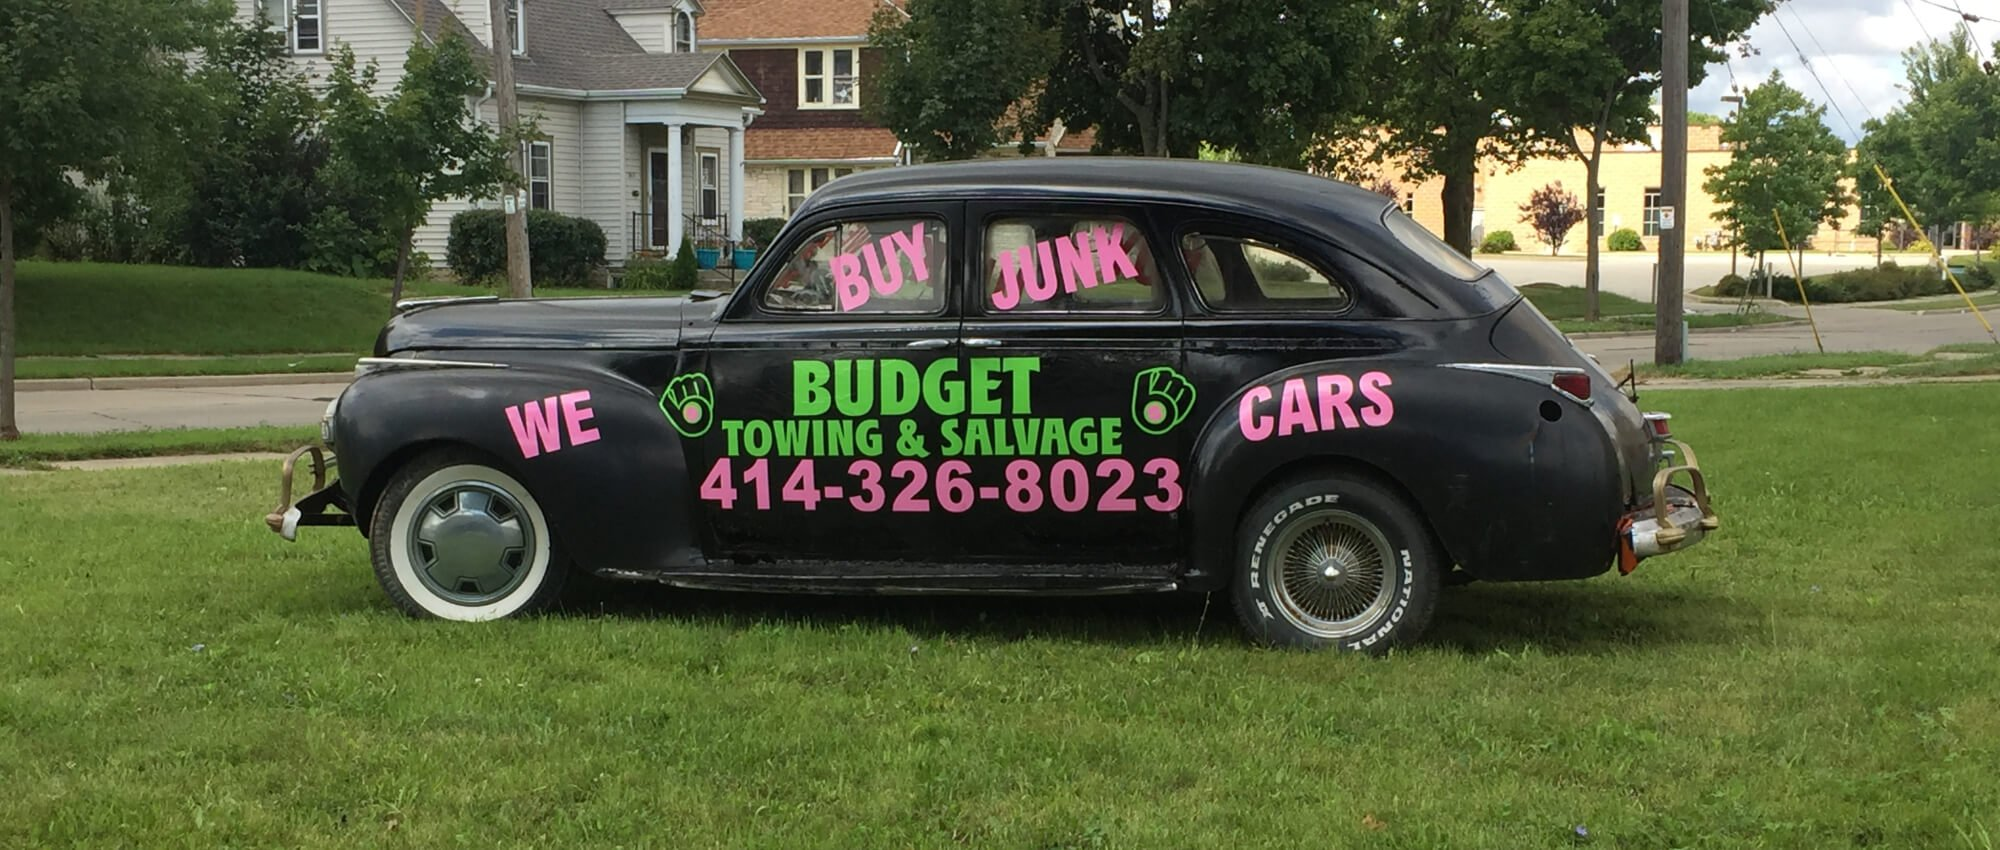 Budget Towing Banner (16)